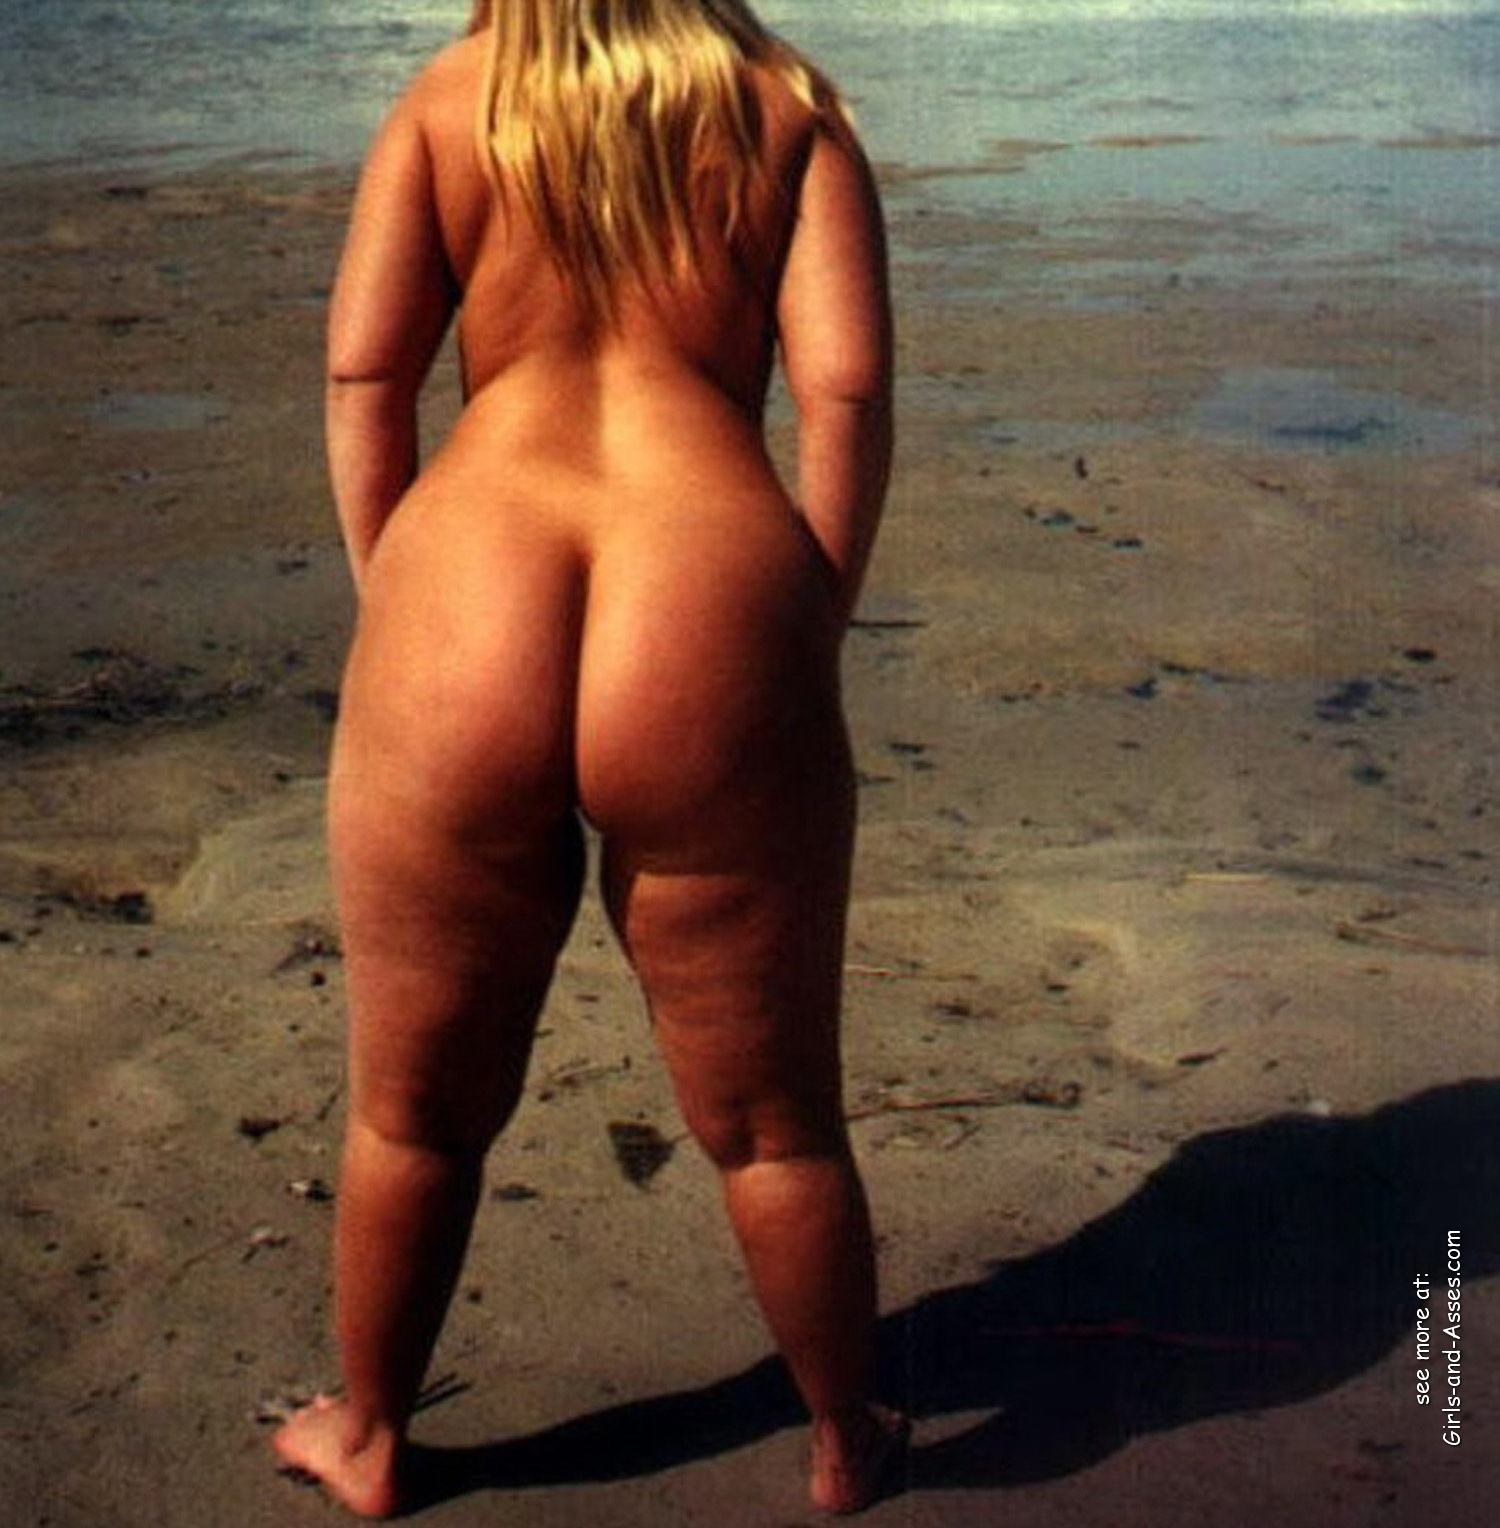 big booty naked women at the beach photo 03342